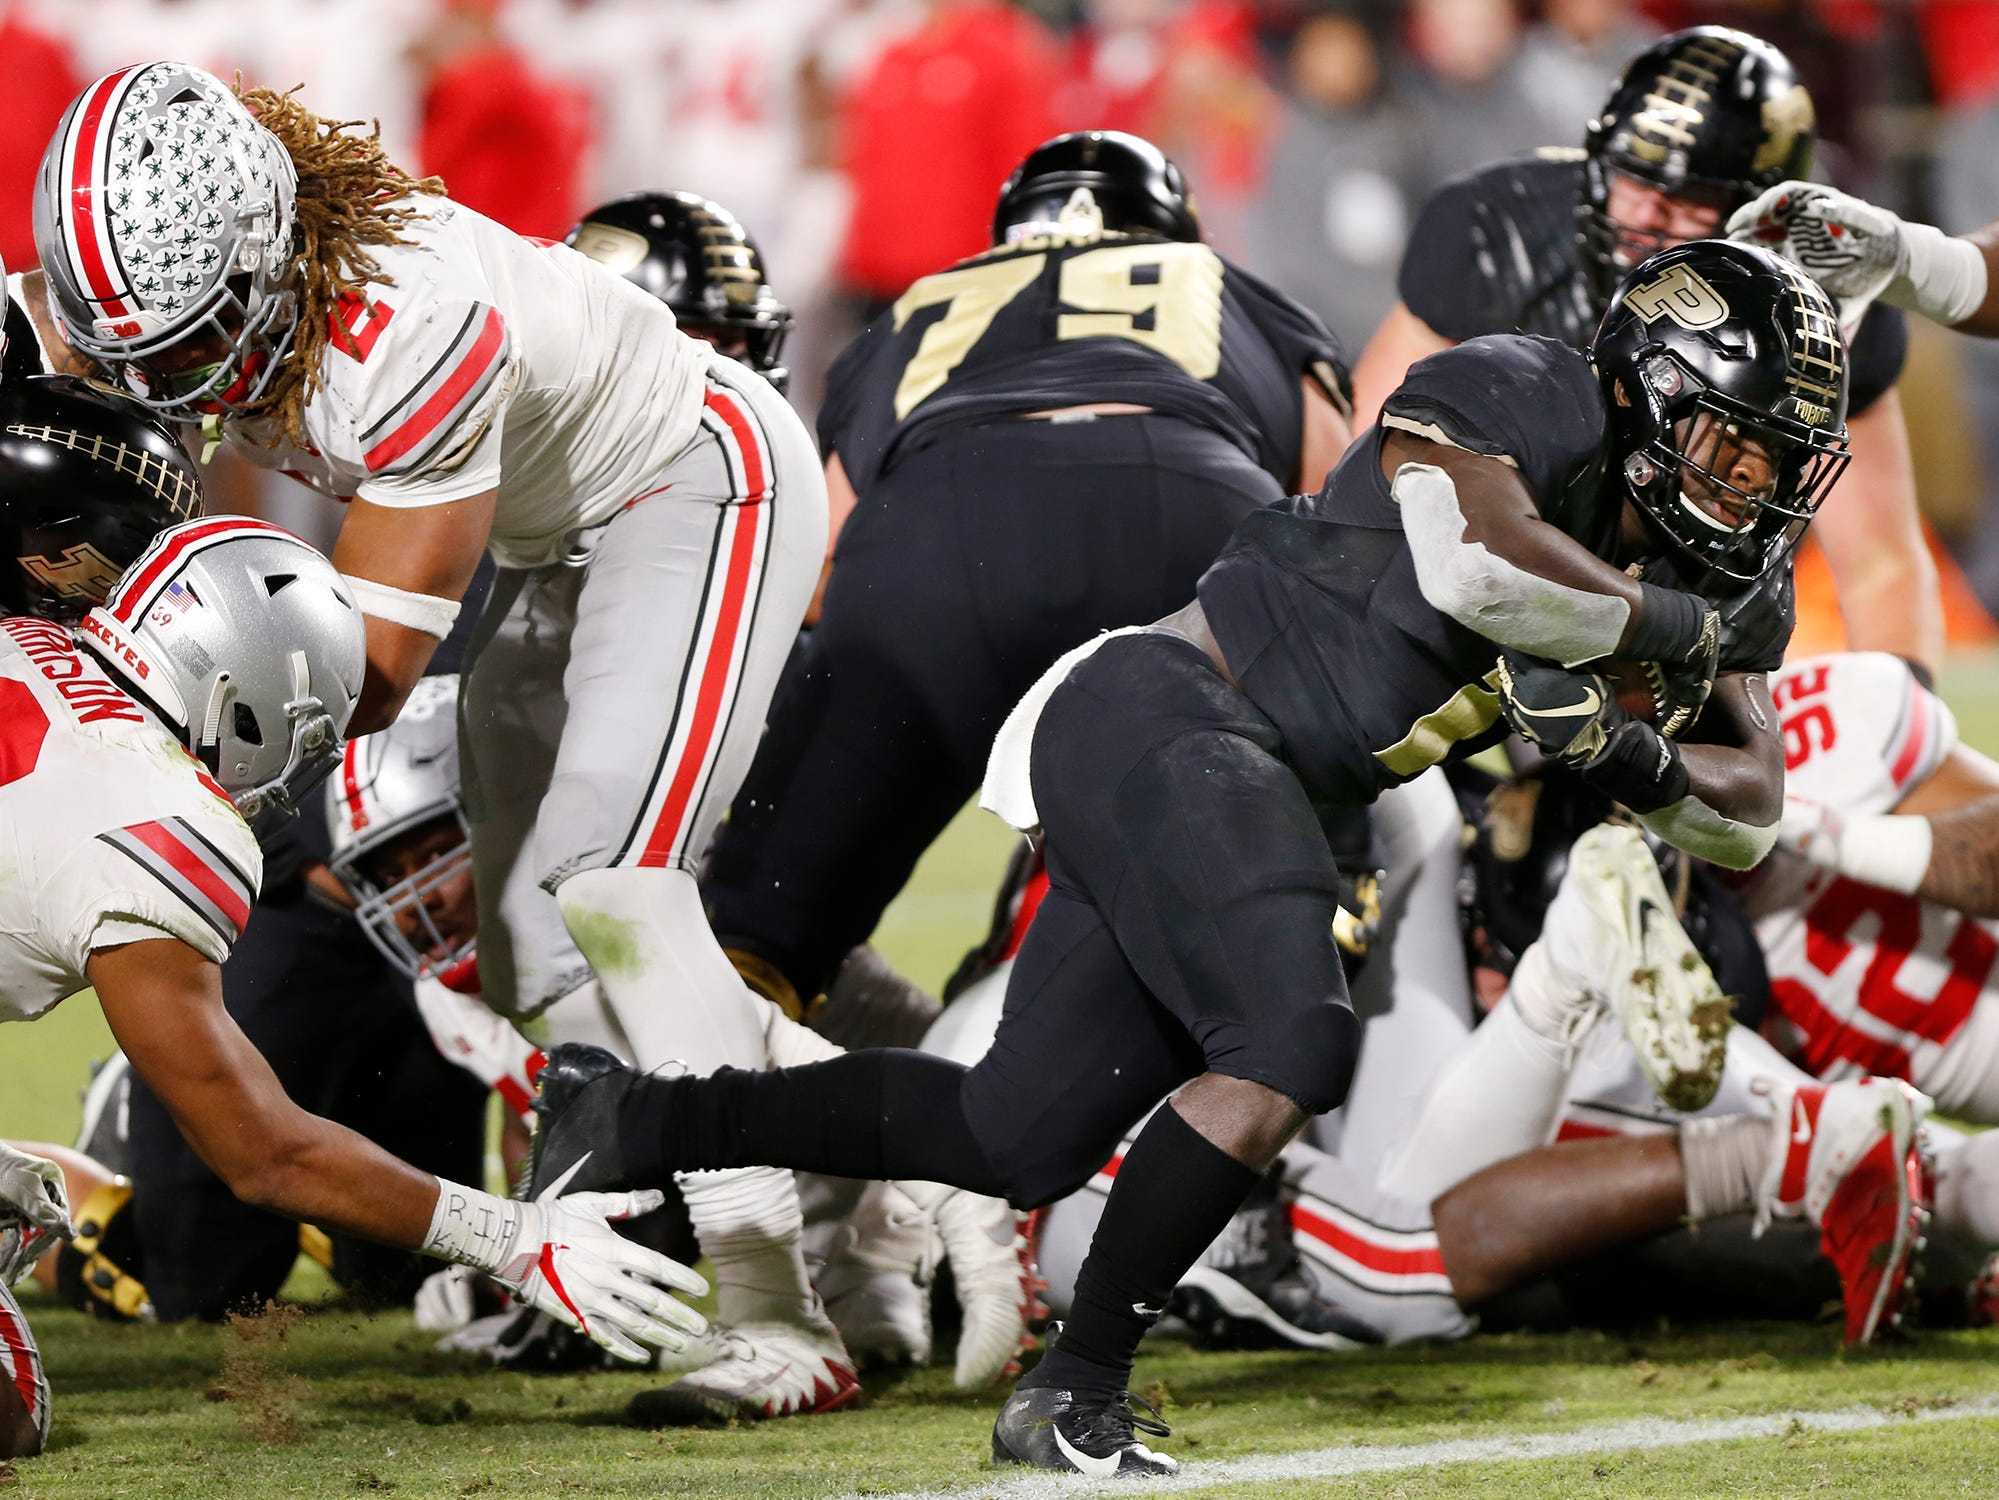 D. J. Knox plunges through the Ohio State defensive line for a touchdown at 8:36 in the third quarter Saturday, October 20, 2018, at Ross-Ade Stadium. Purdue upset the No. 2 ranked Buckeyes 49-20.